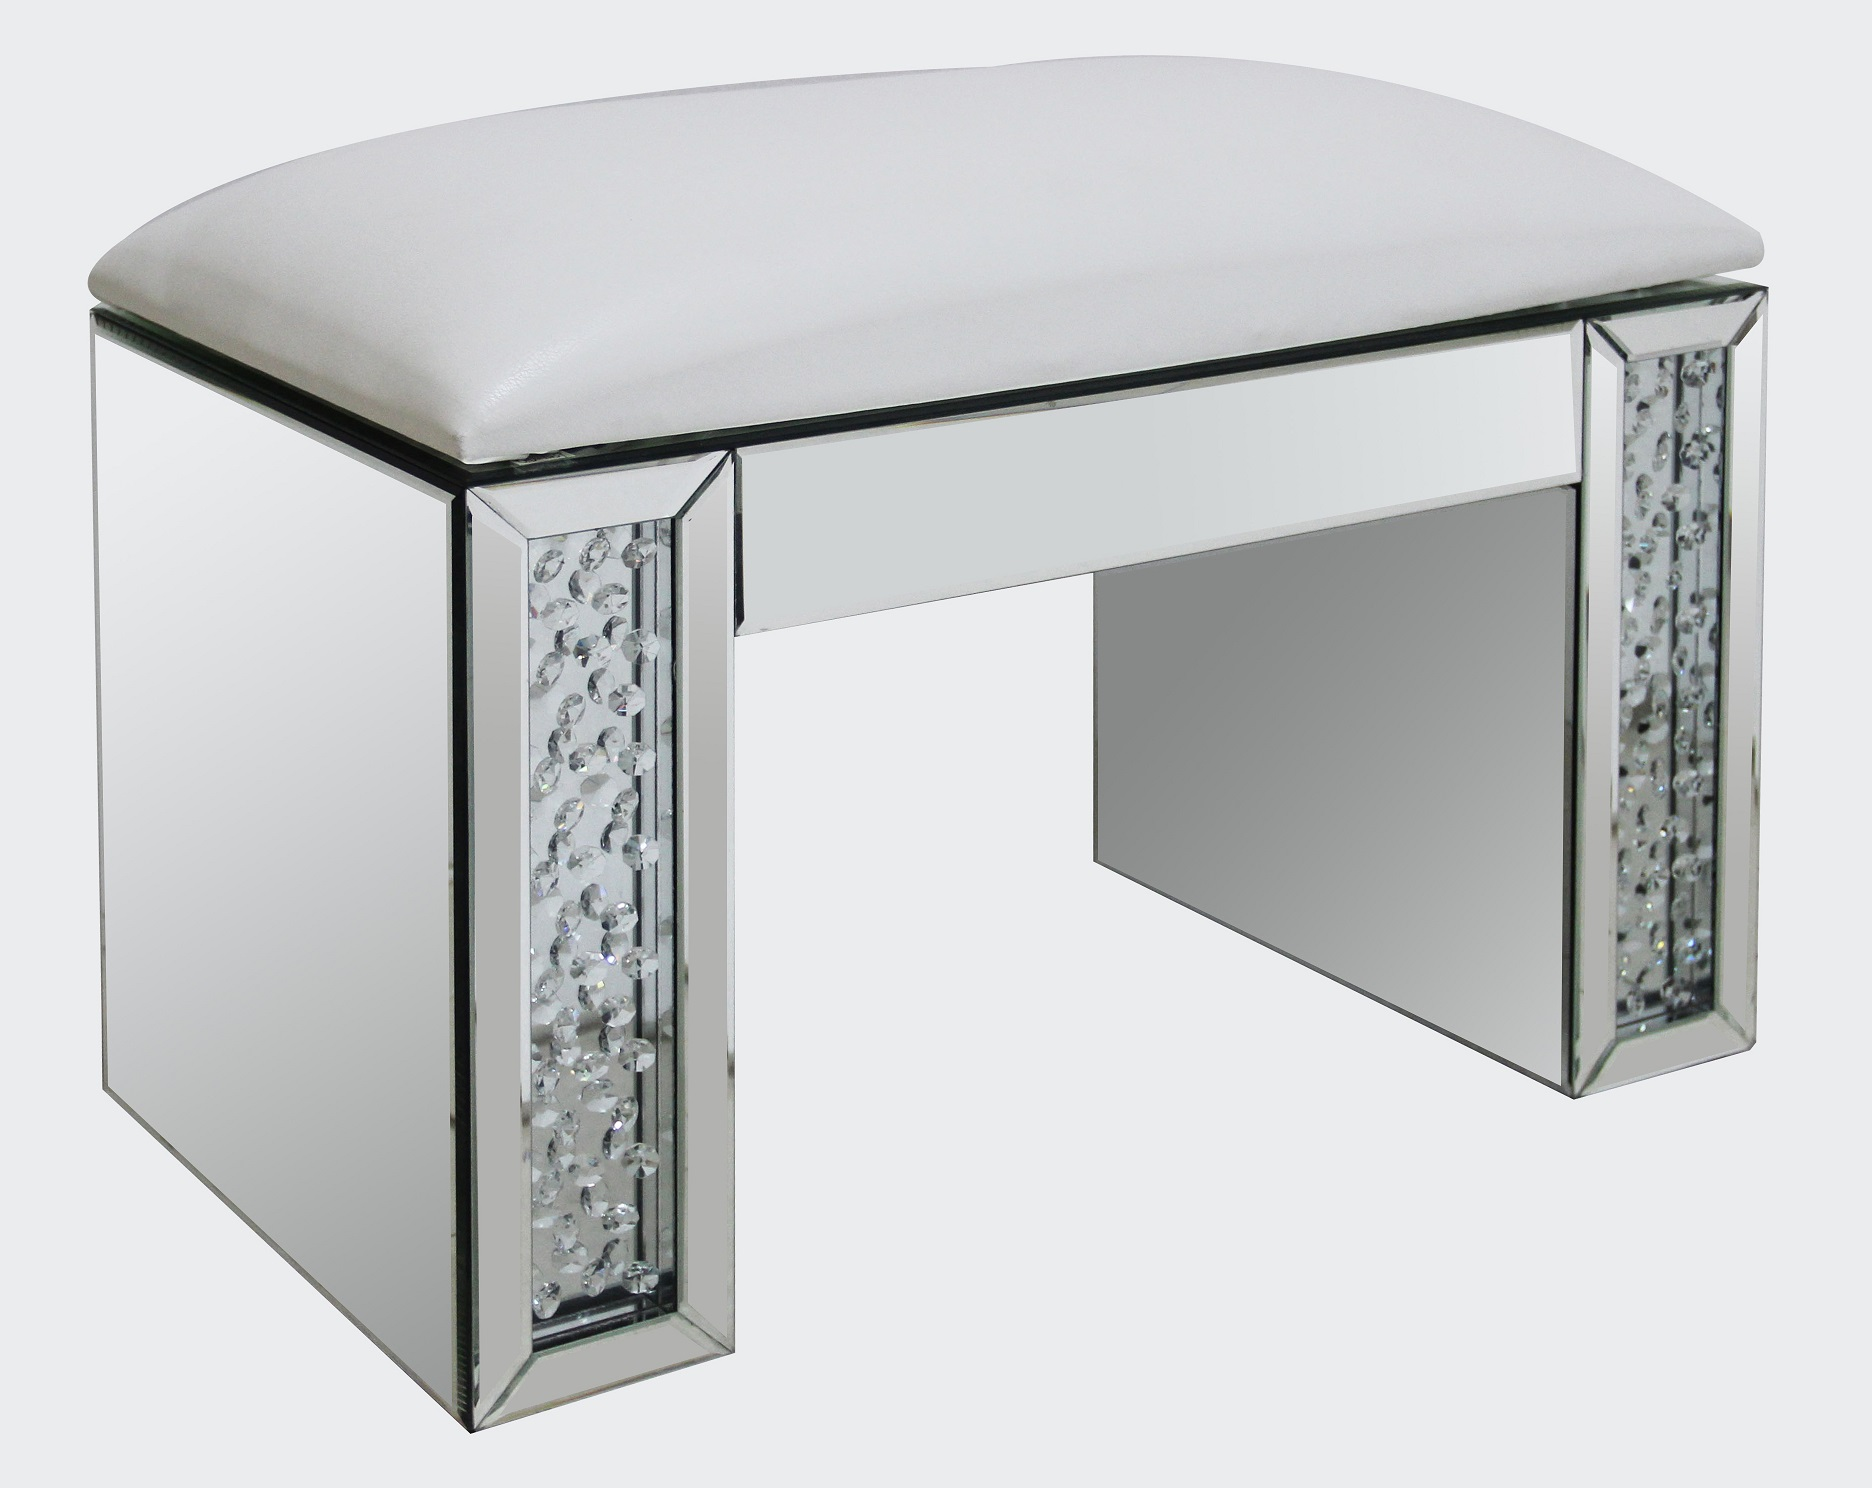 https://www.firstfurniture.co.uk/pub/media/catalog/product/g/l/glitz_stool.jpg